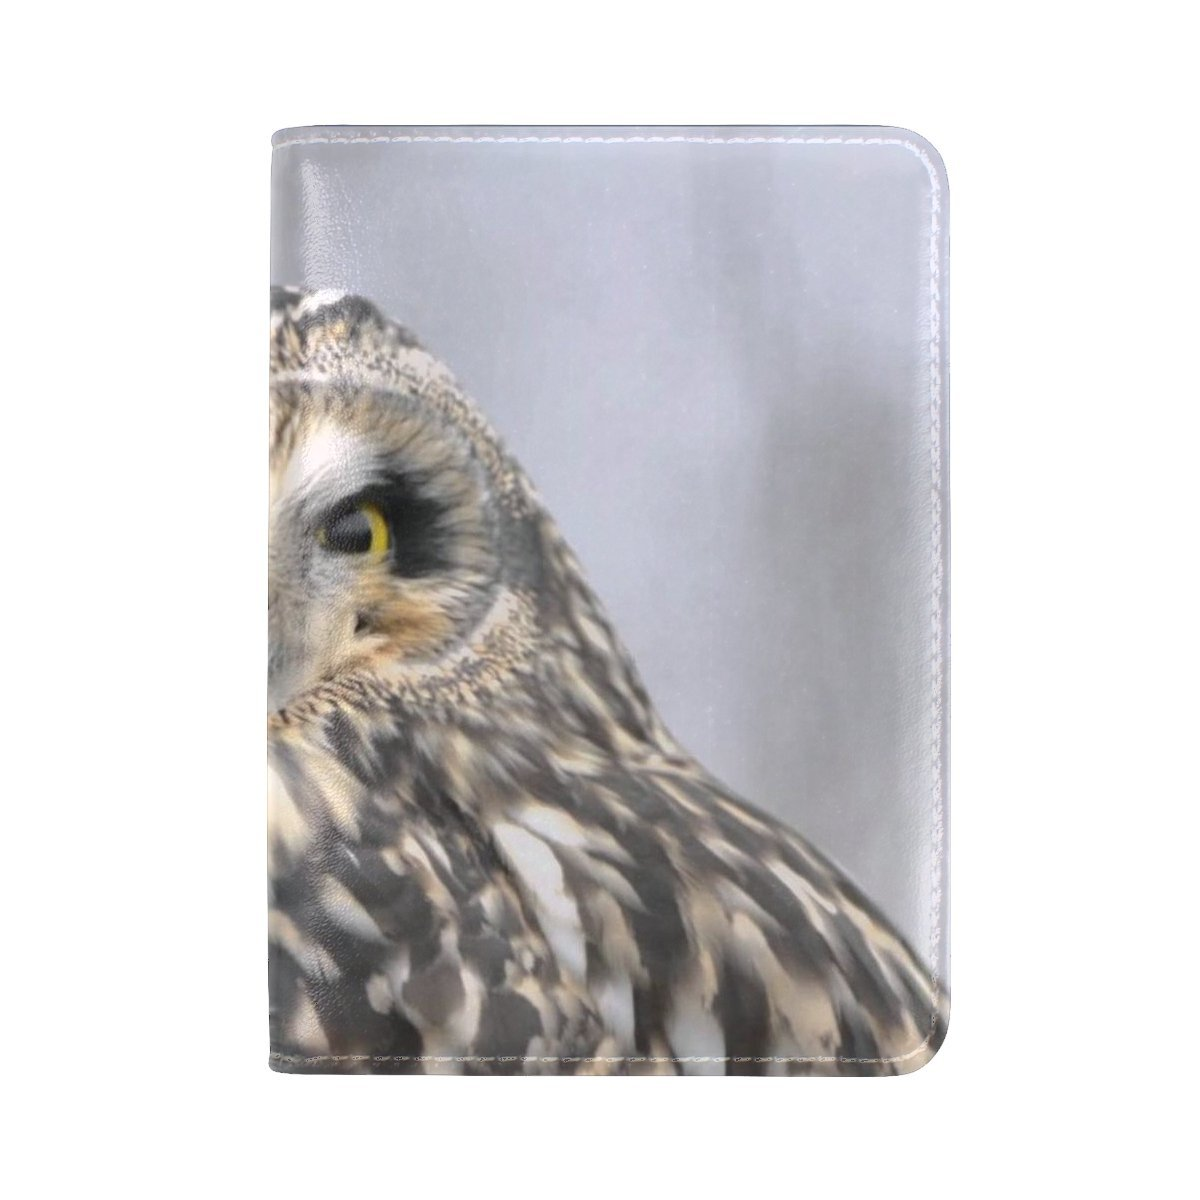 Animal Owl Short-eared Adorable Brown Haired Smart Single Amazing Leather Passport Holder Cover Case Travel One Pocket